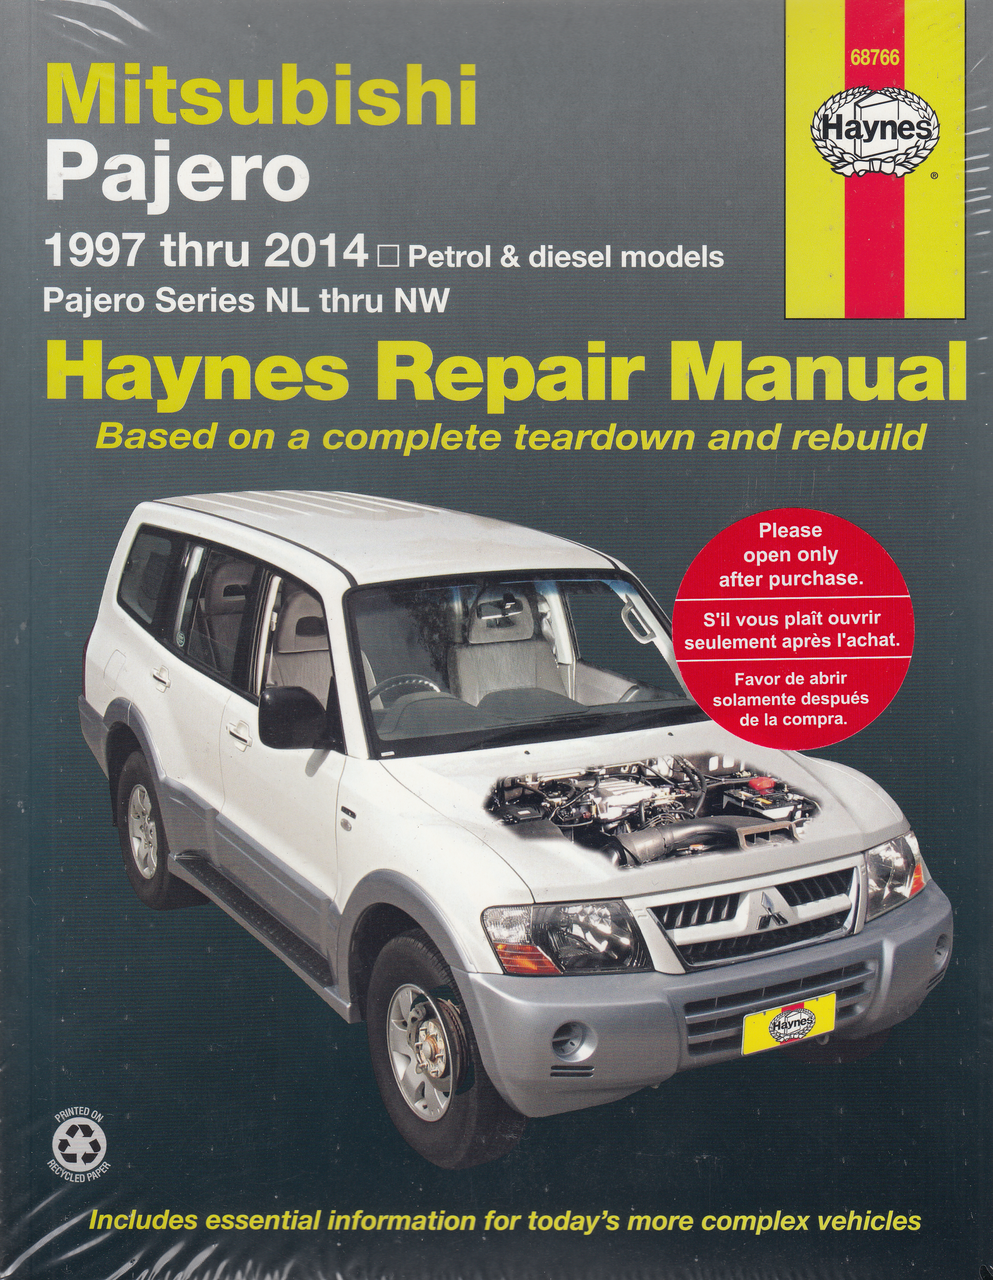 Mitsubishi Pajero NL, NM, NP, NS, NT, NW,petrol and diesel 1997 - 2014  Workshop Manual